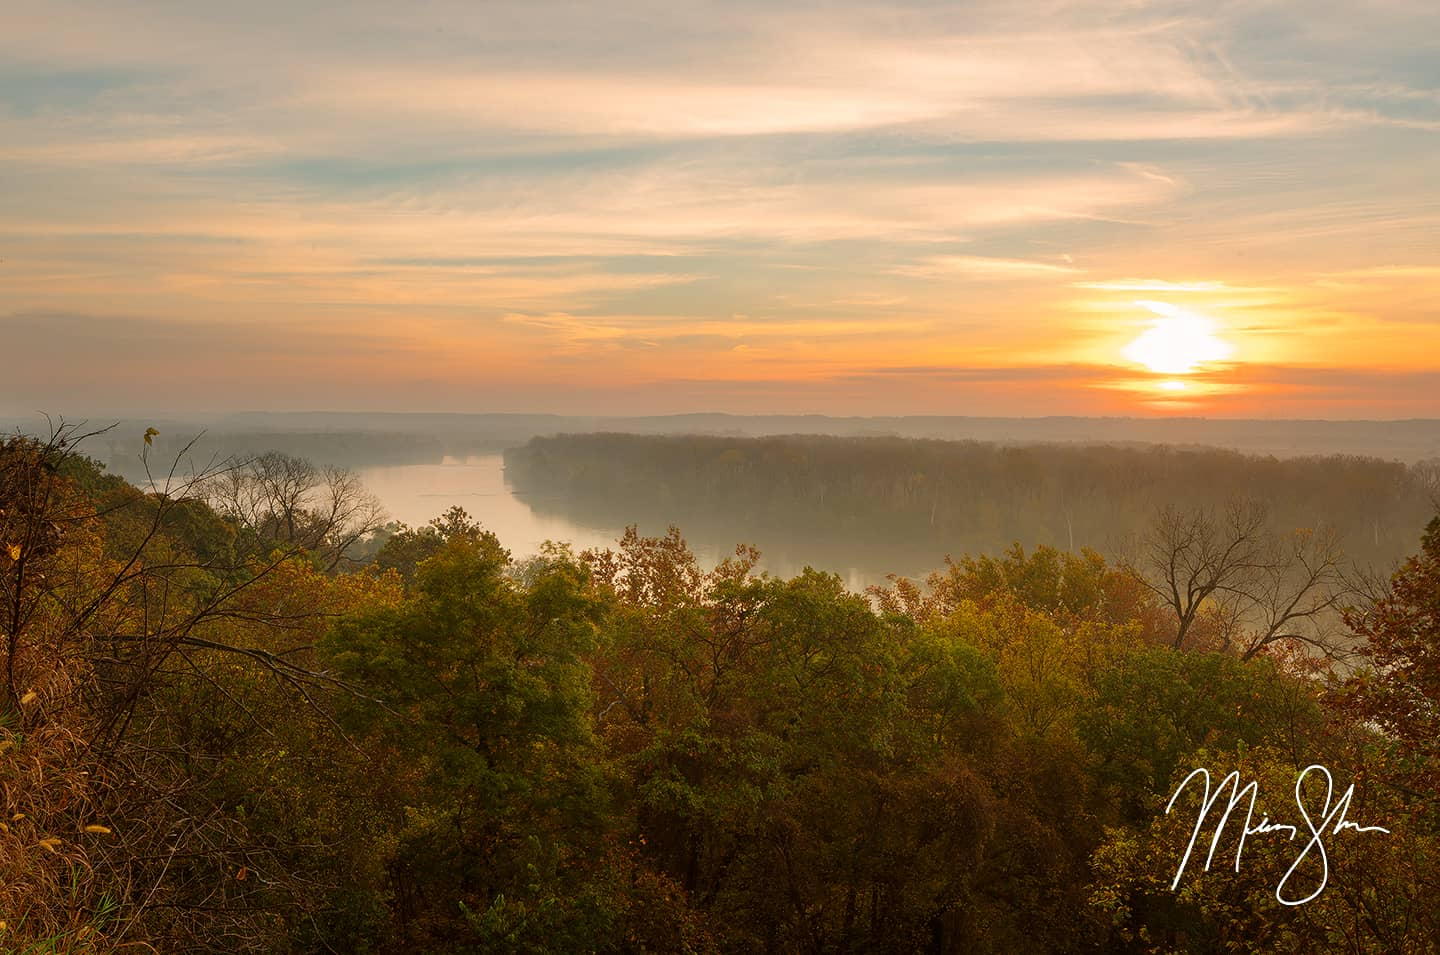 Open edition fine art print of Atchison Autumn Sunrise from Mickey Shannon Photography. Location: Atchison, KS